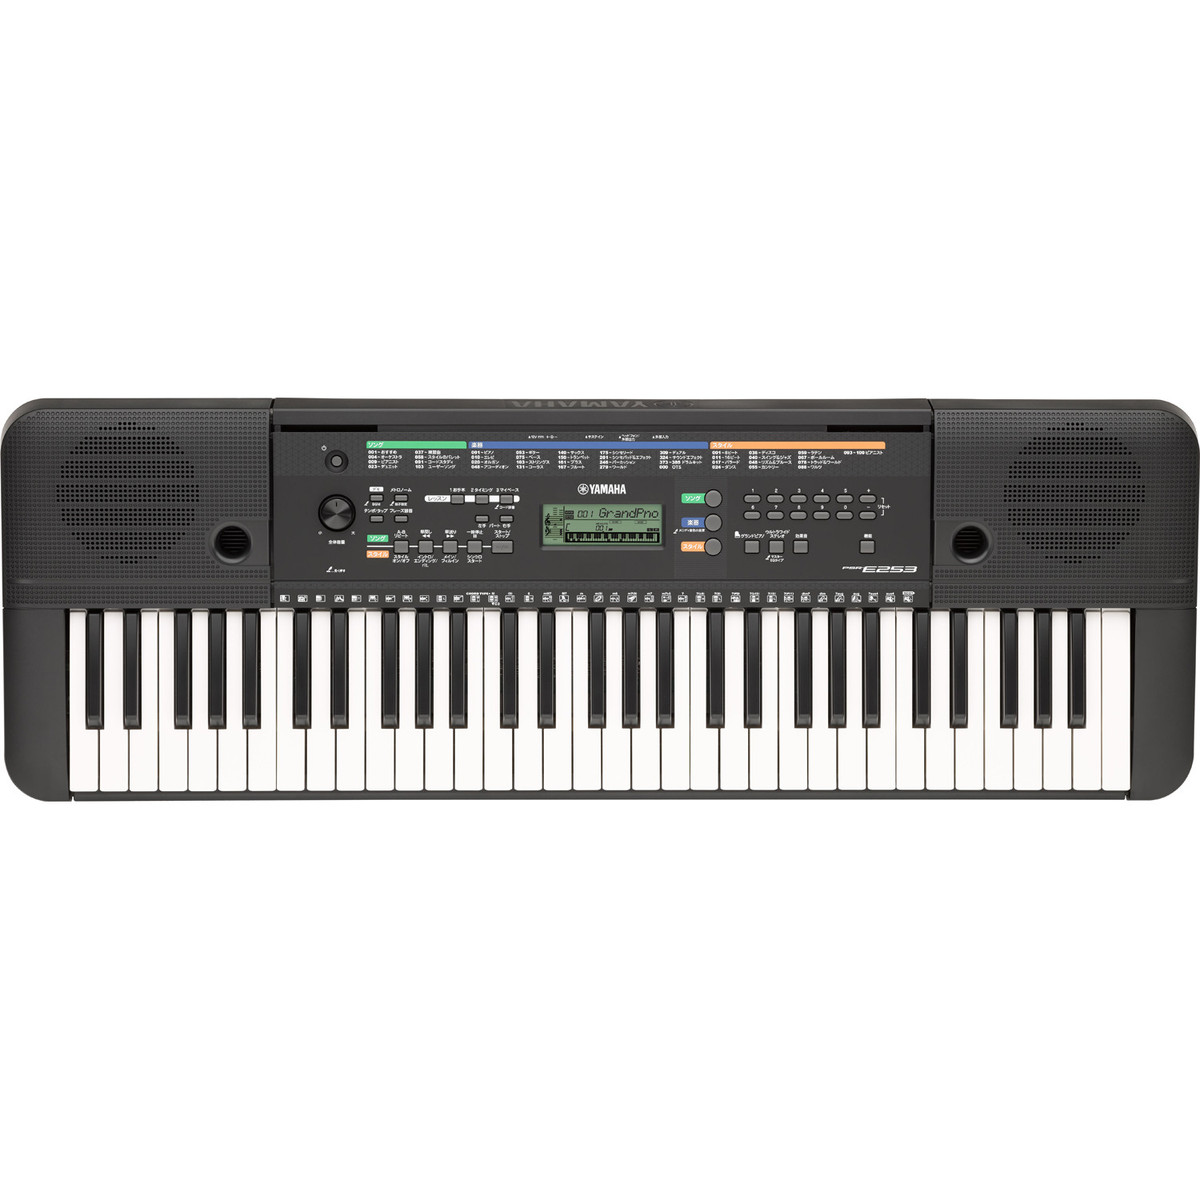 Yamaha psr e253 portable keyboard nearly new at for Www yamaha keyboards